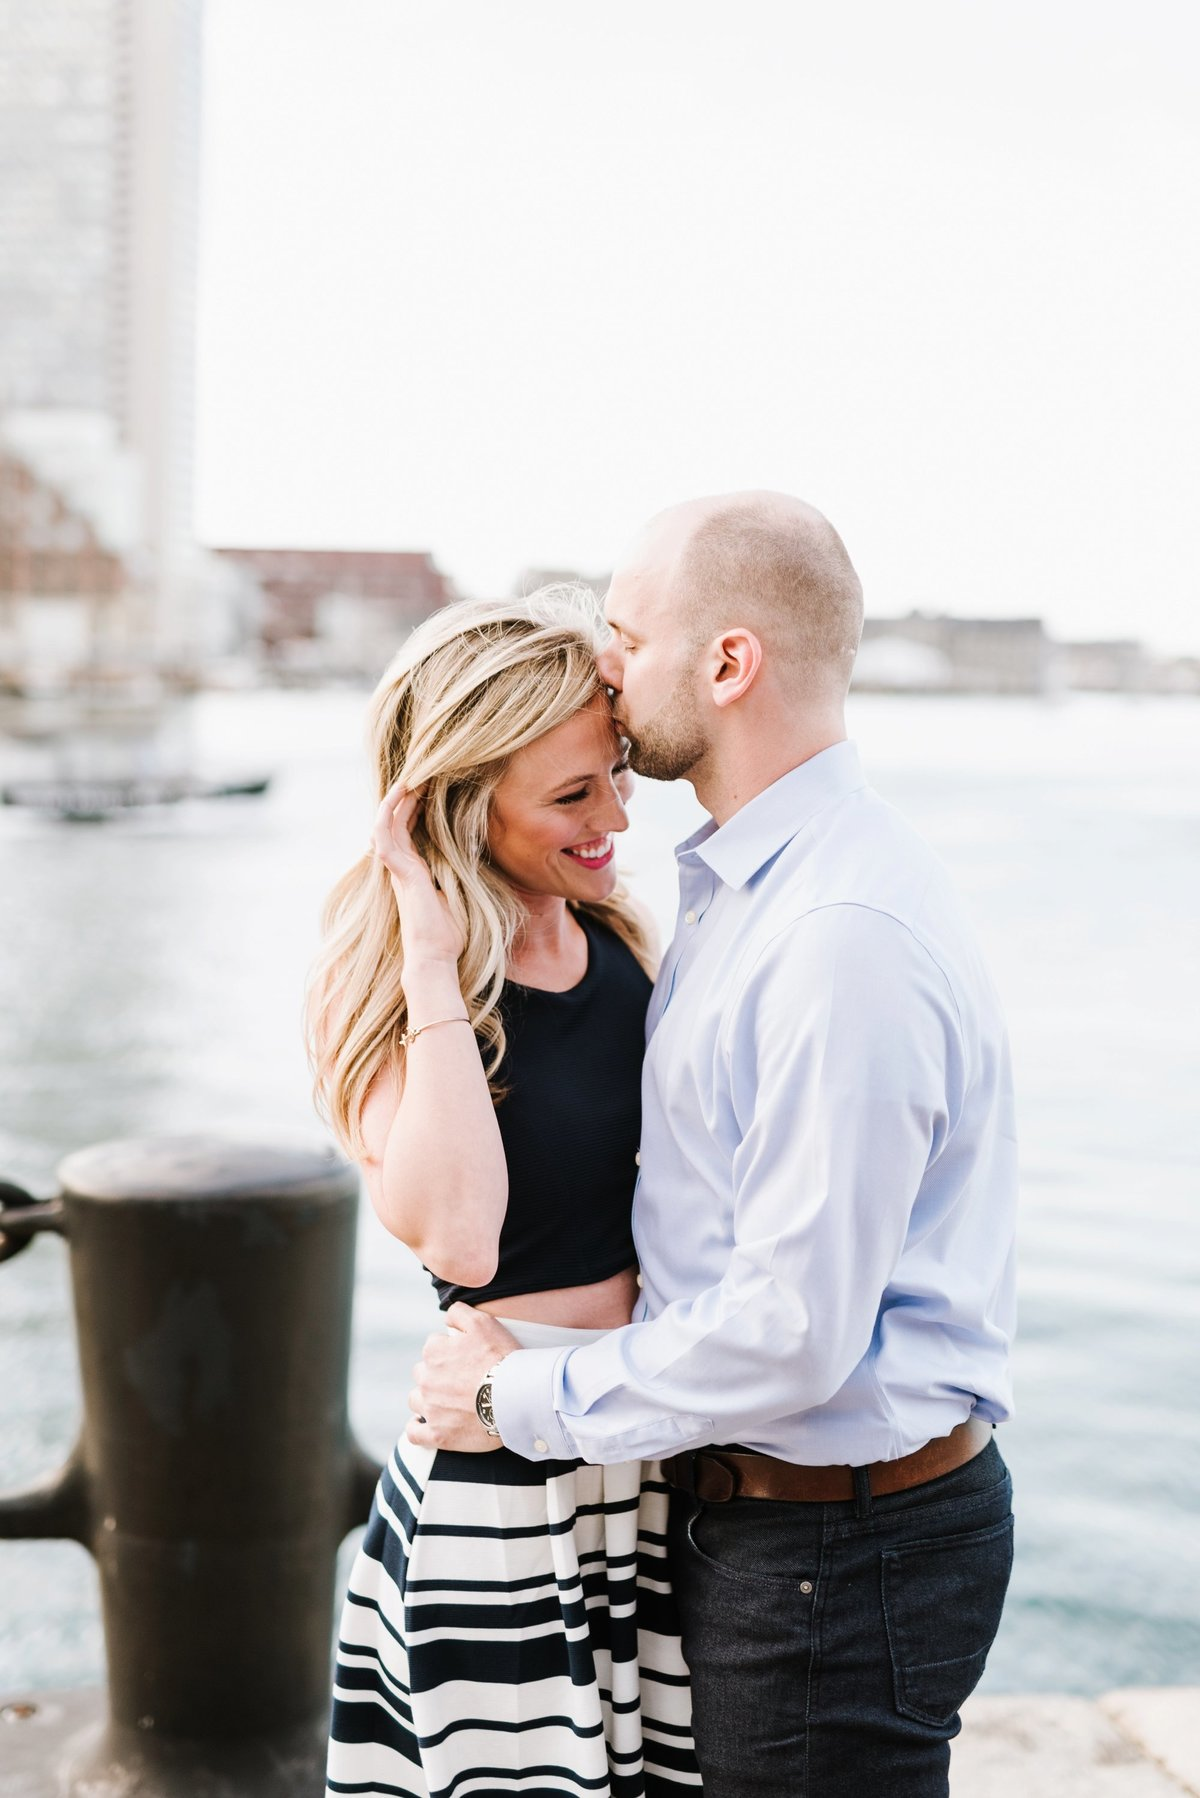 seaport-district-beacon-hill-engagement-session-boston-wedding-photographer-photo_0007